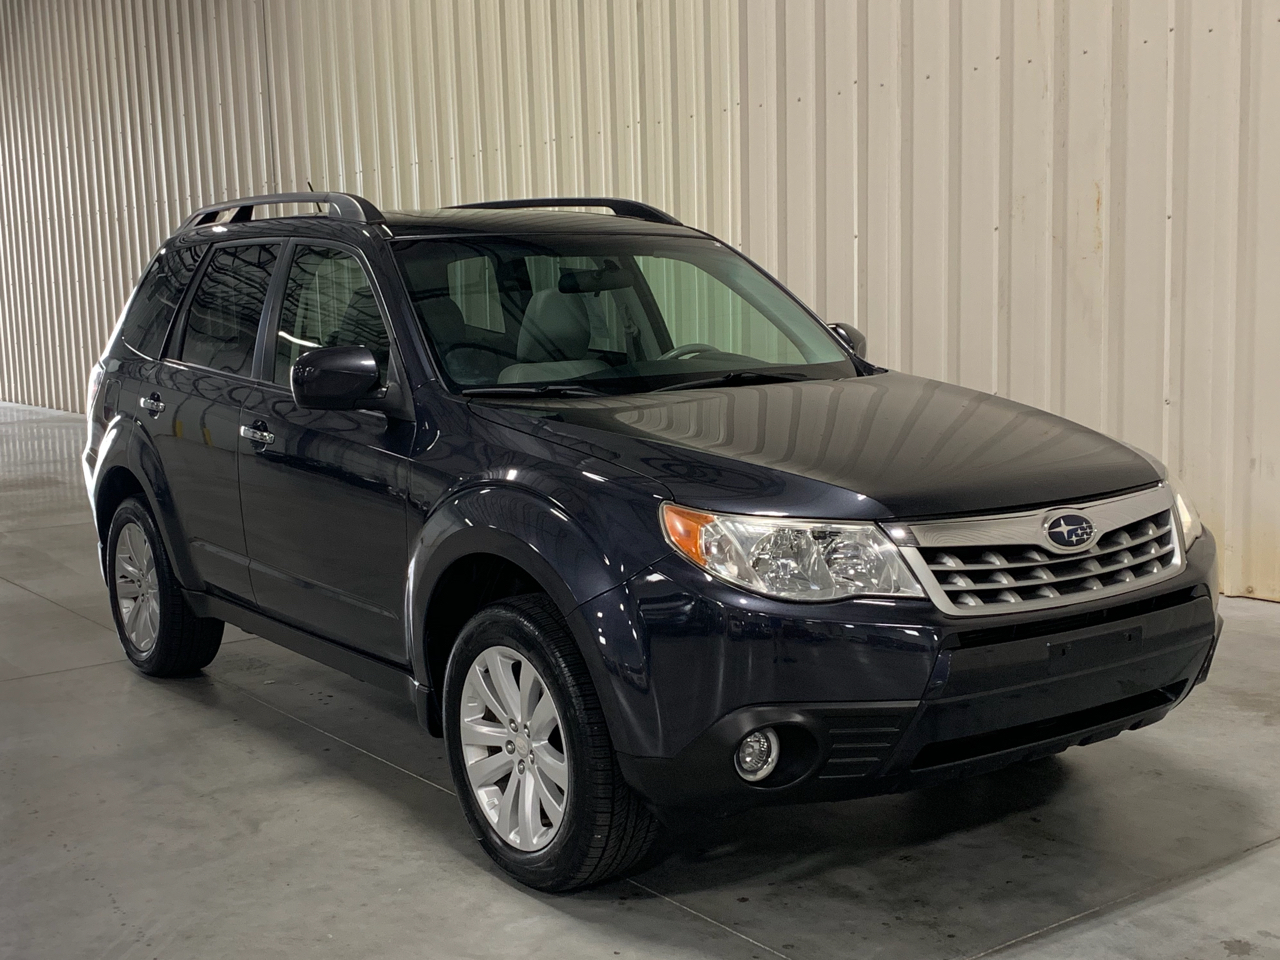 2012 Subaru Forester 4dr Auto 2.5X Limited